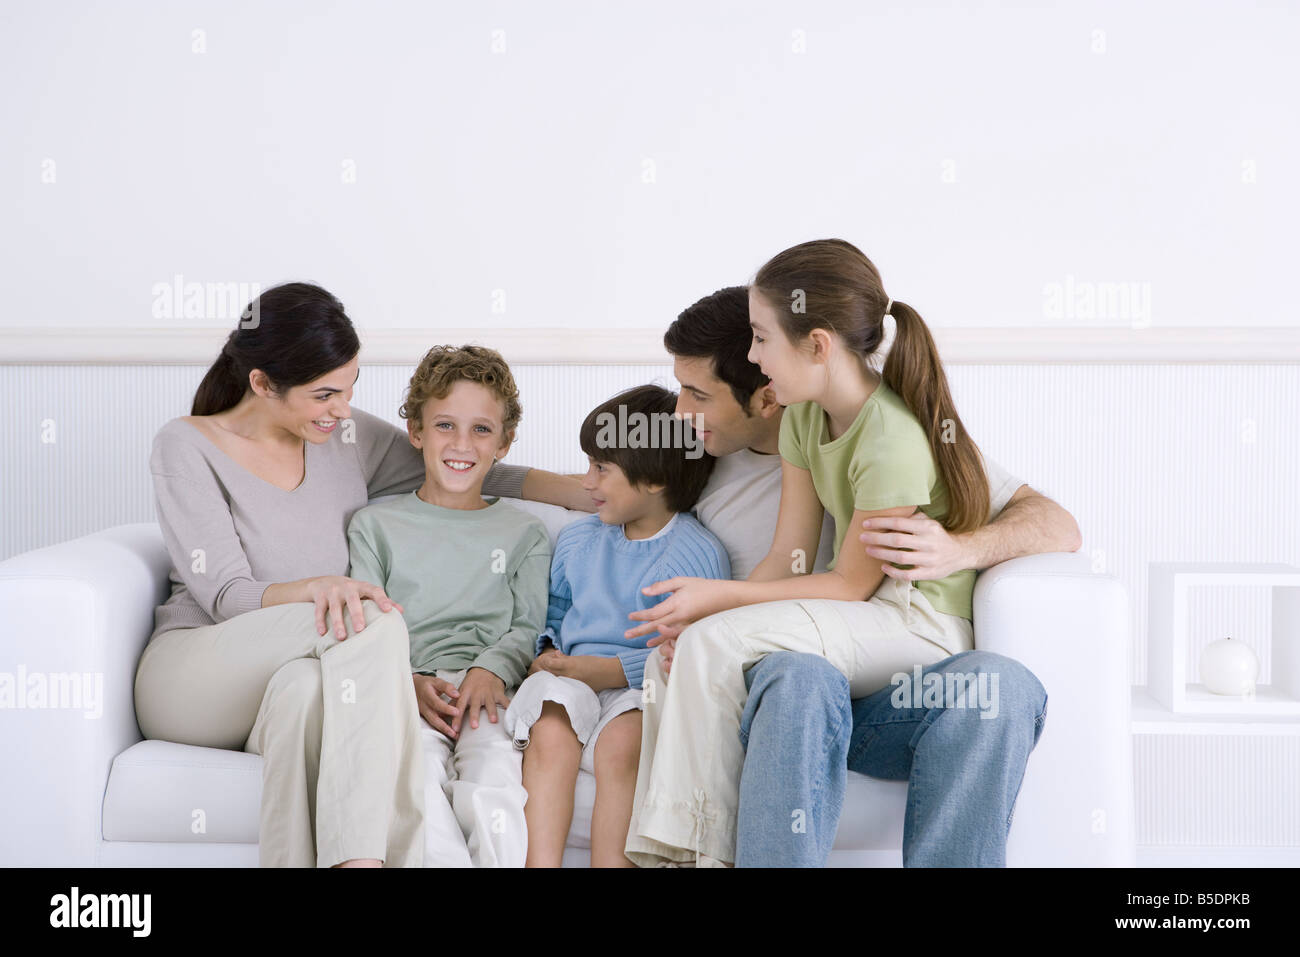 Family with three children sitting together on sofa, one boy smiling at camera Stock Photo